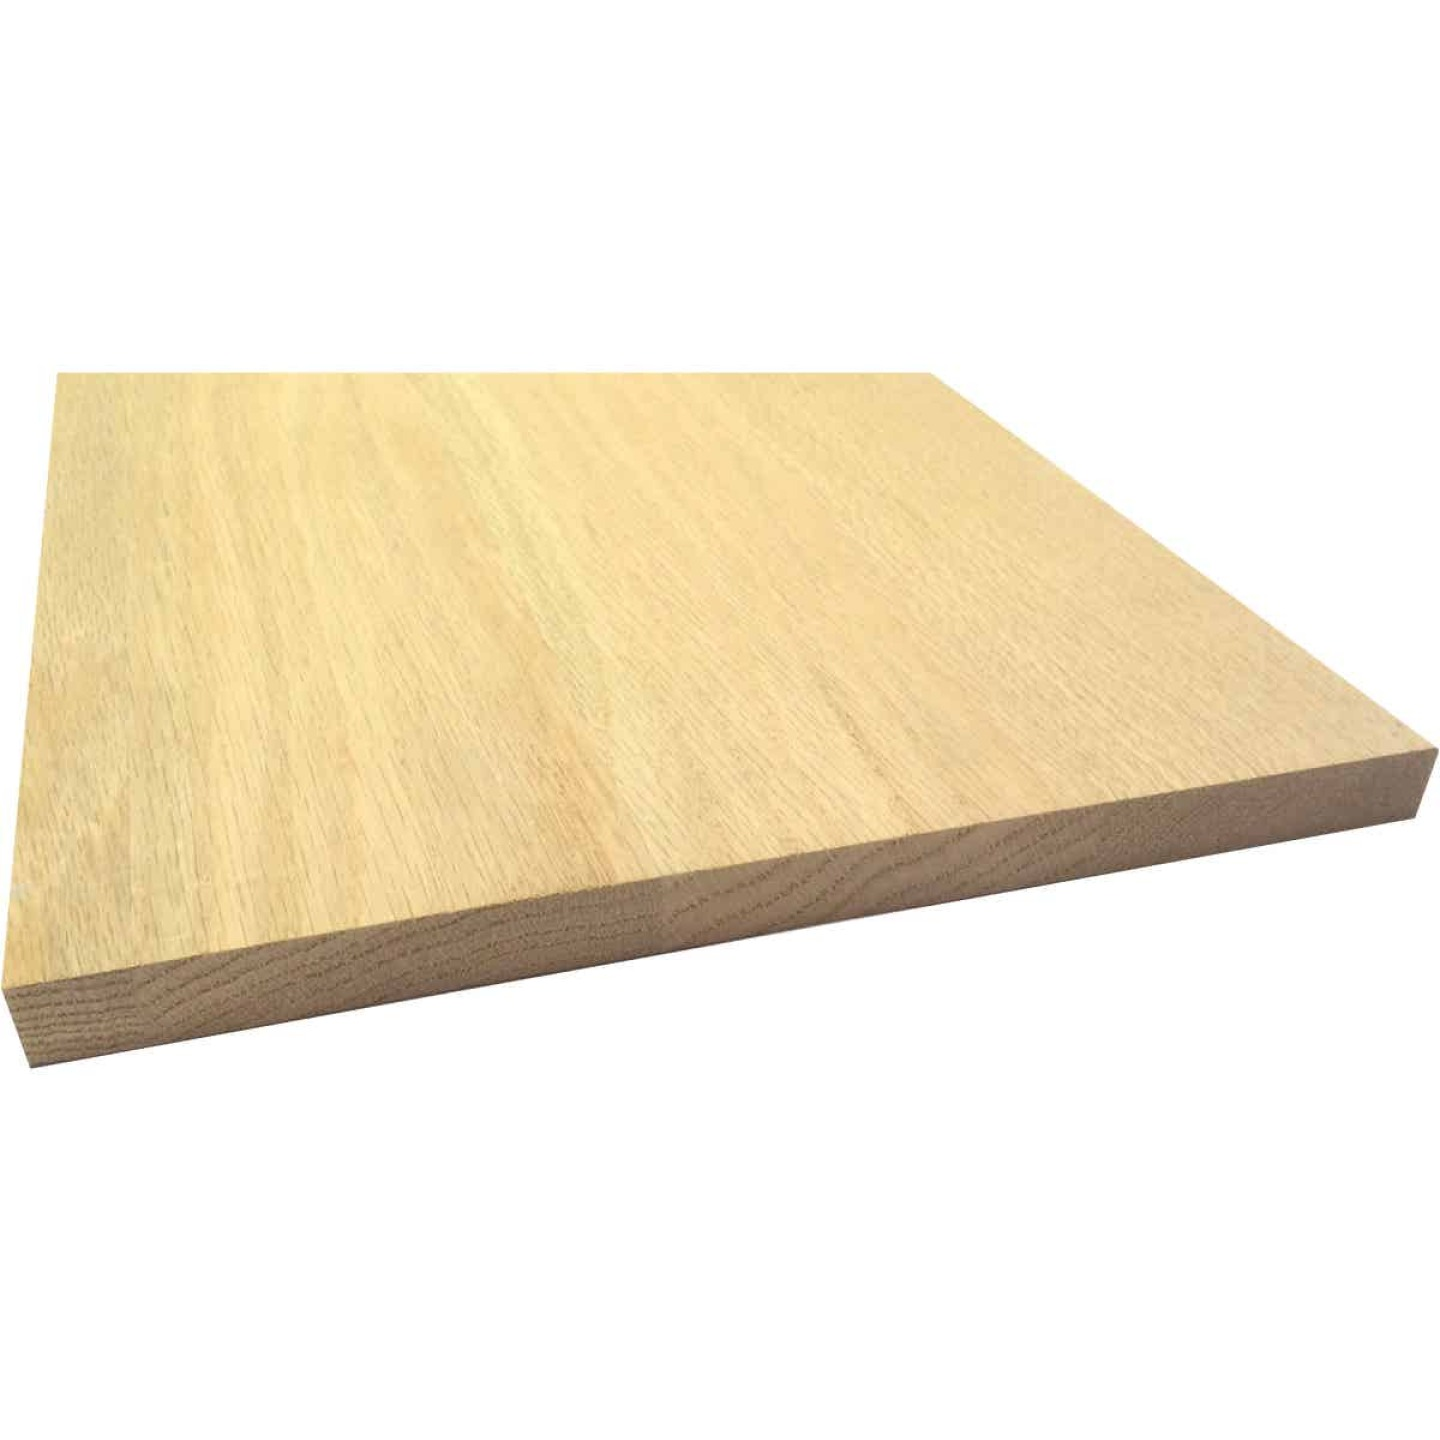 Waddell 1 In. x 12 In. x 6 Ft. Red Oak Board Image 1